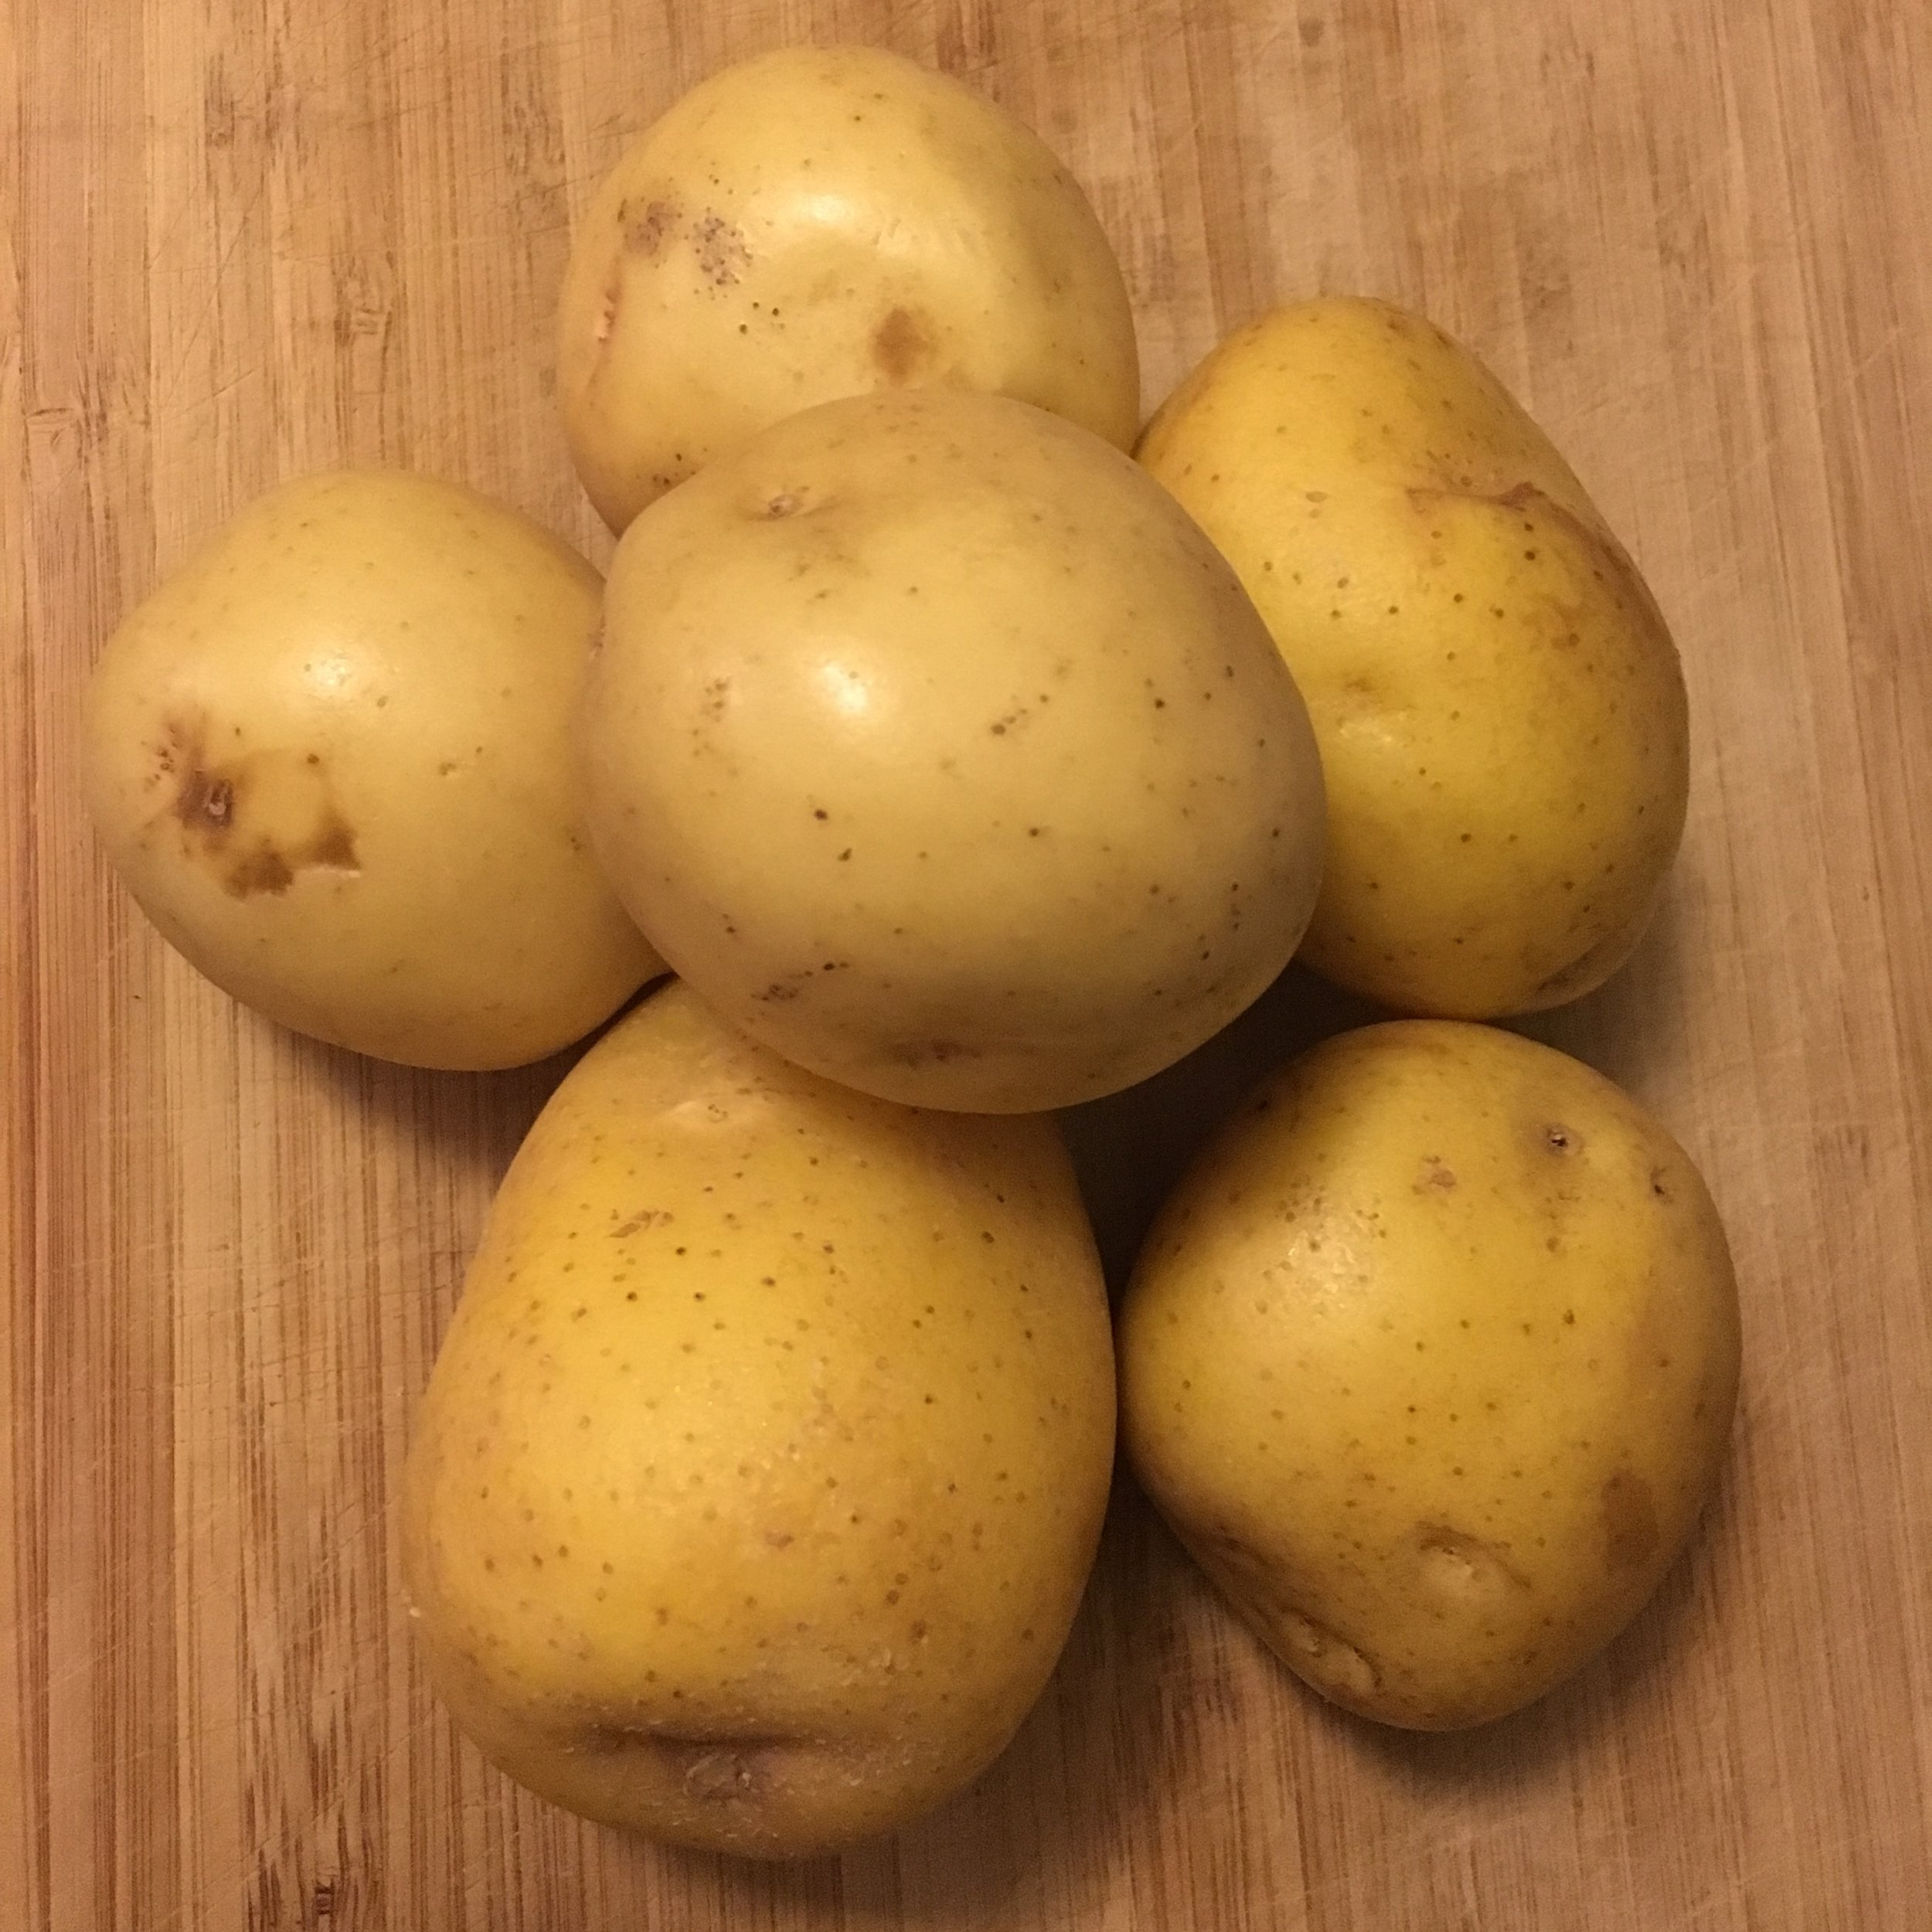 Two pounds of yukon gold potatoes.